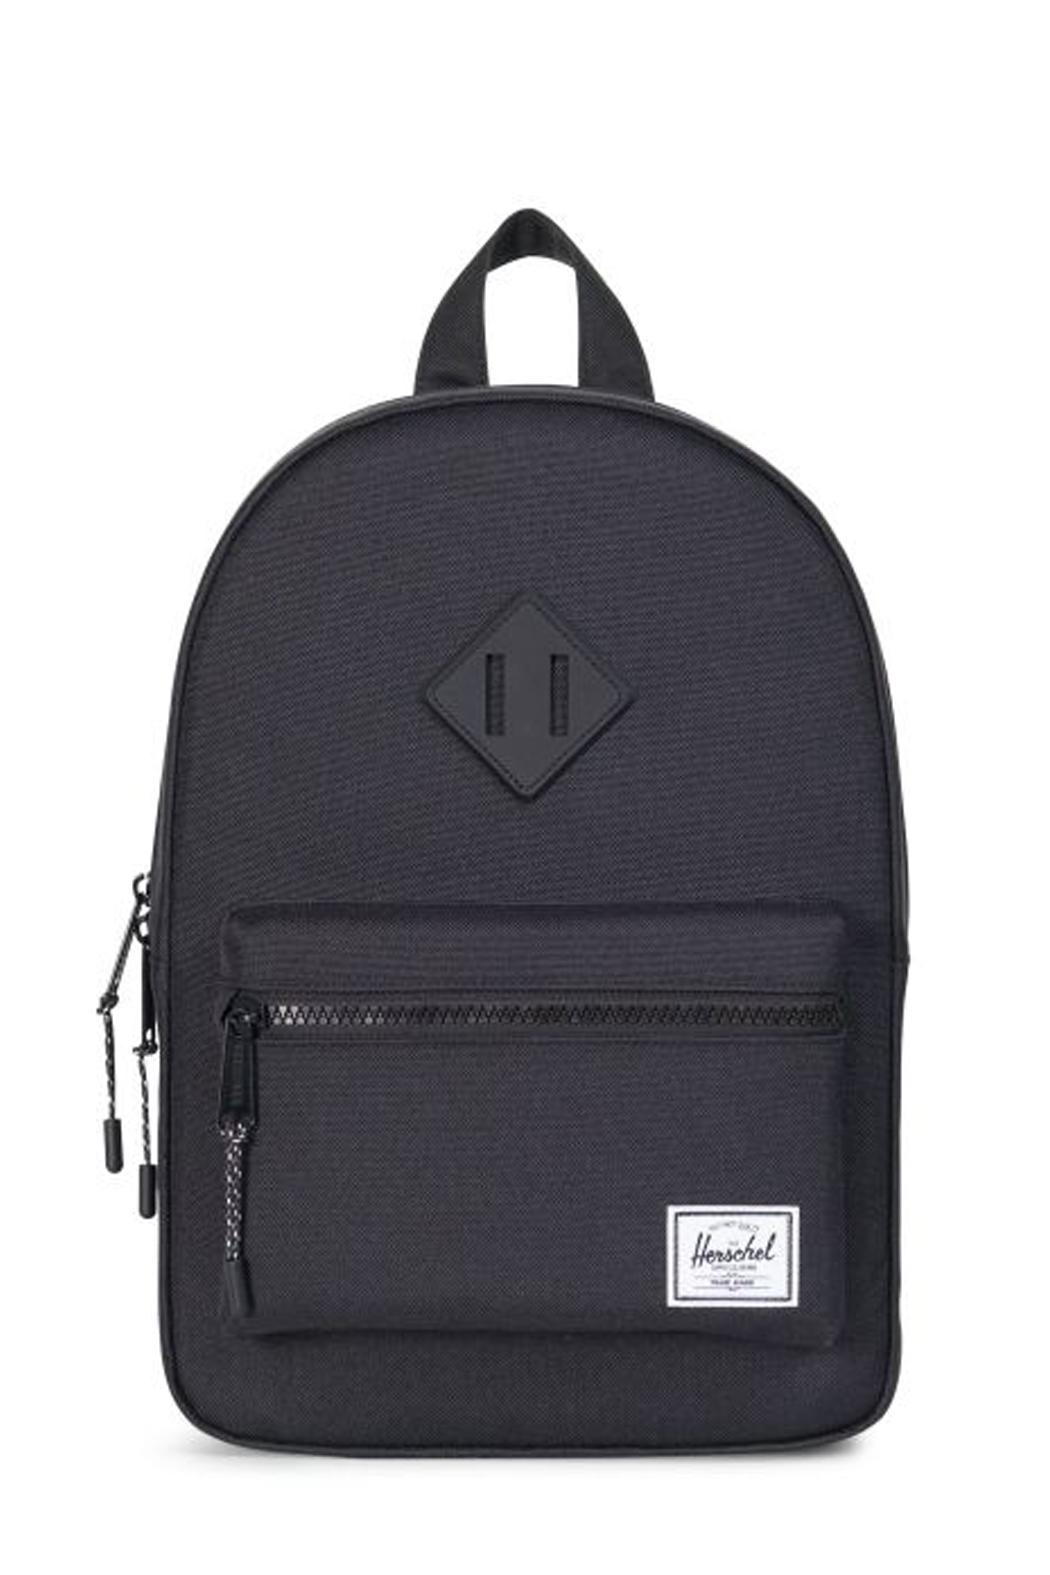 Herschel Supply Co. Herschel Kids Backpack - Main Image